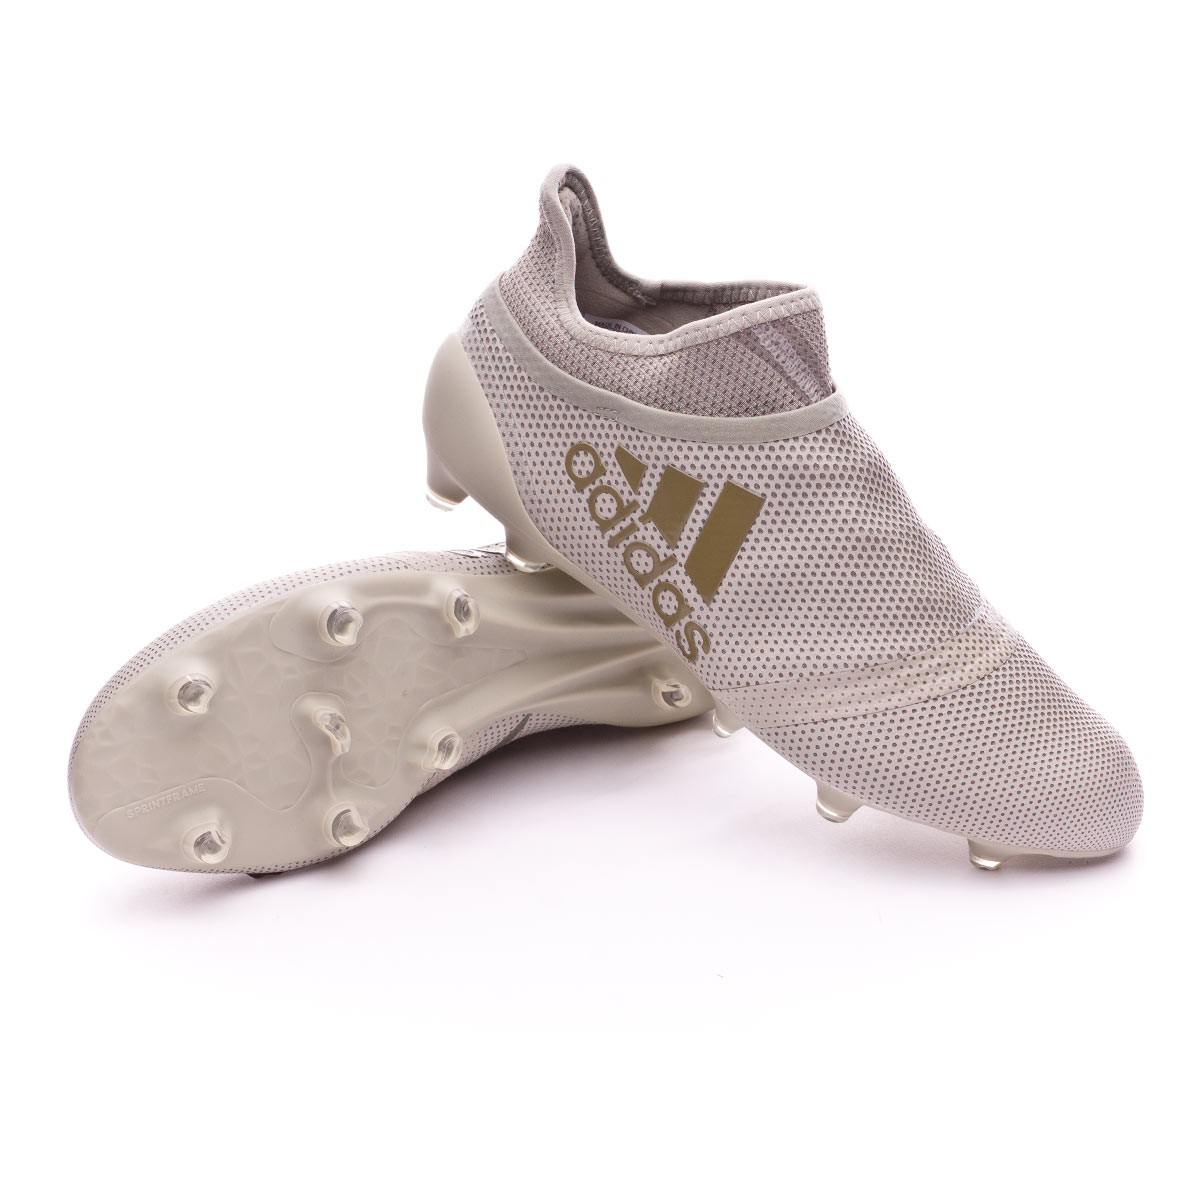 Boot adidas X 17+ Purespeed FG Sesame-Clay - Leaked soccer 9a4662987